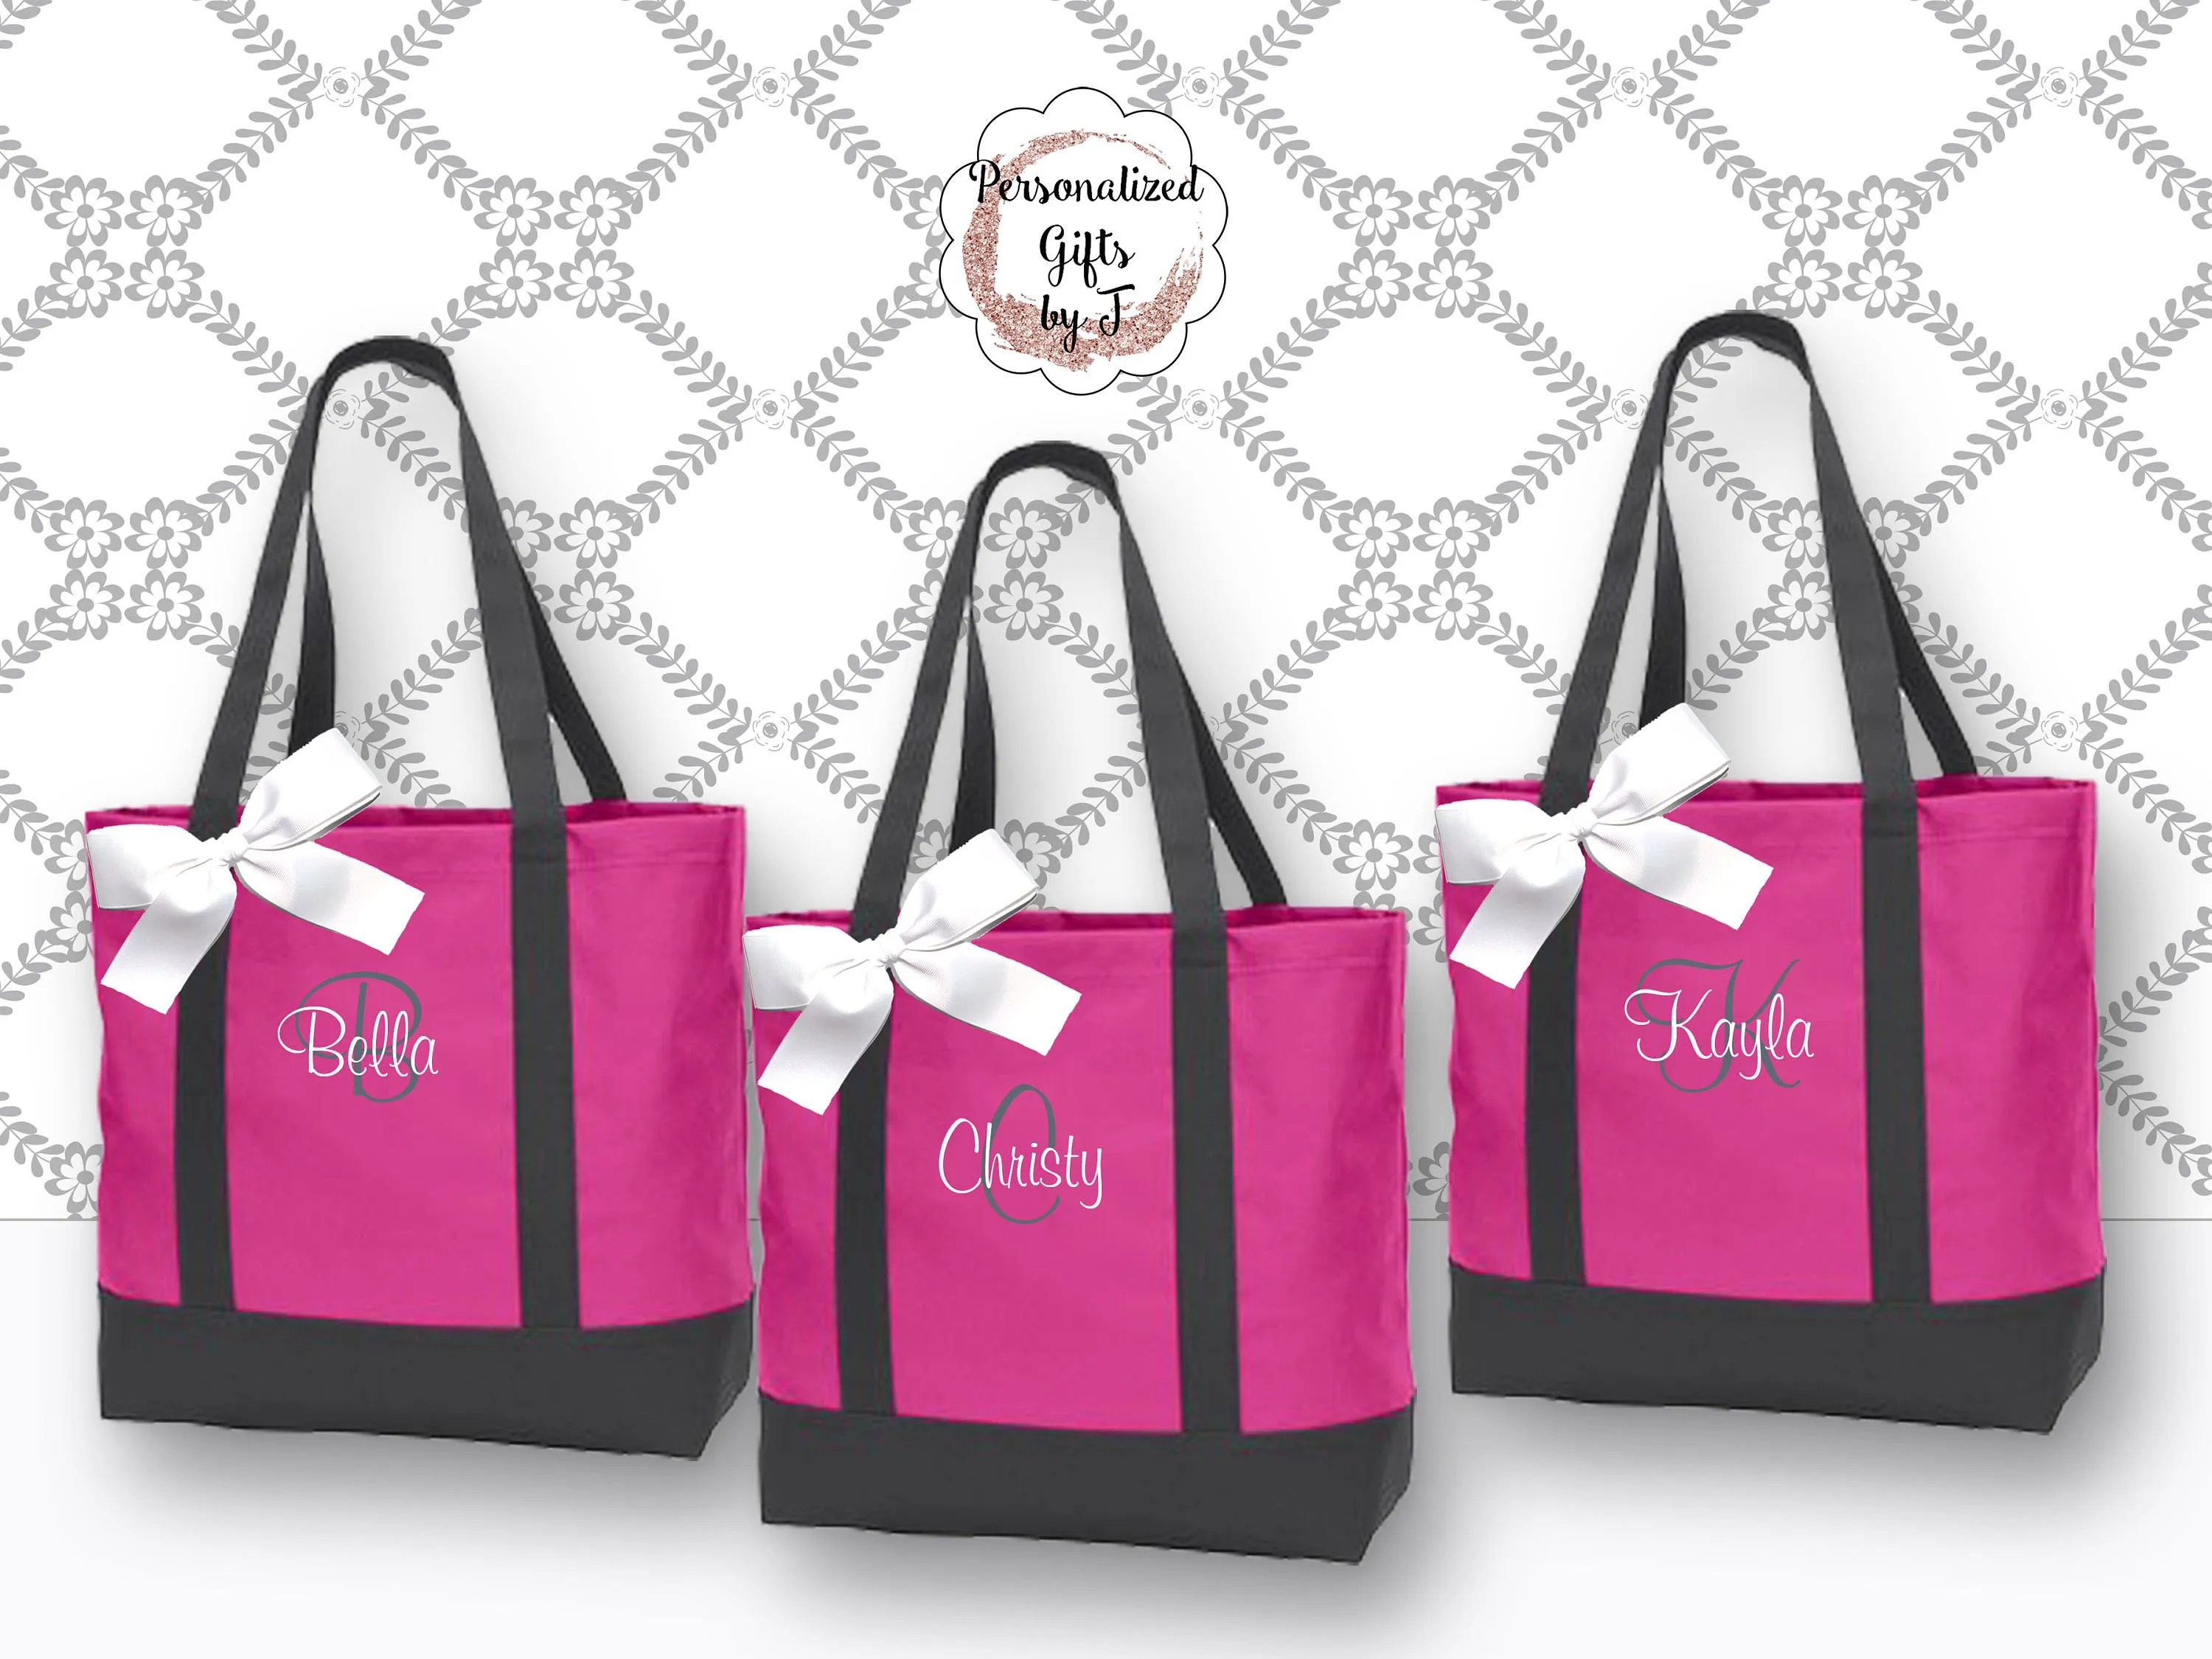 Personalized Beach Tote Bridesmaid Bags, Bridesmaids Gift